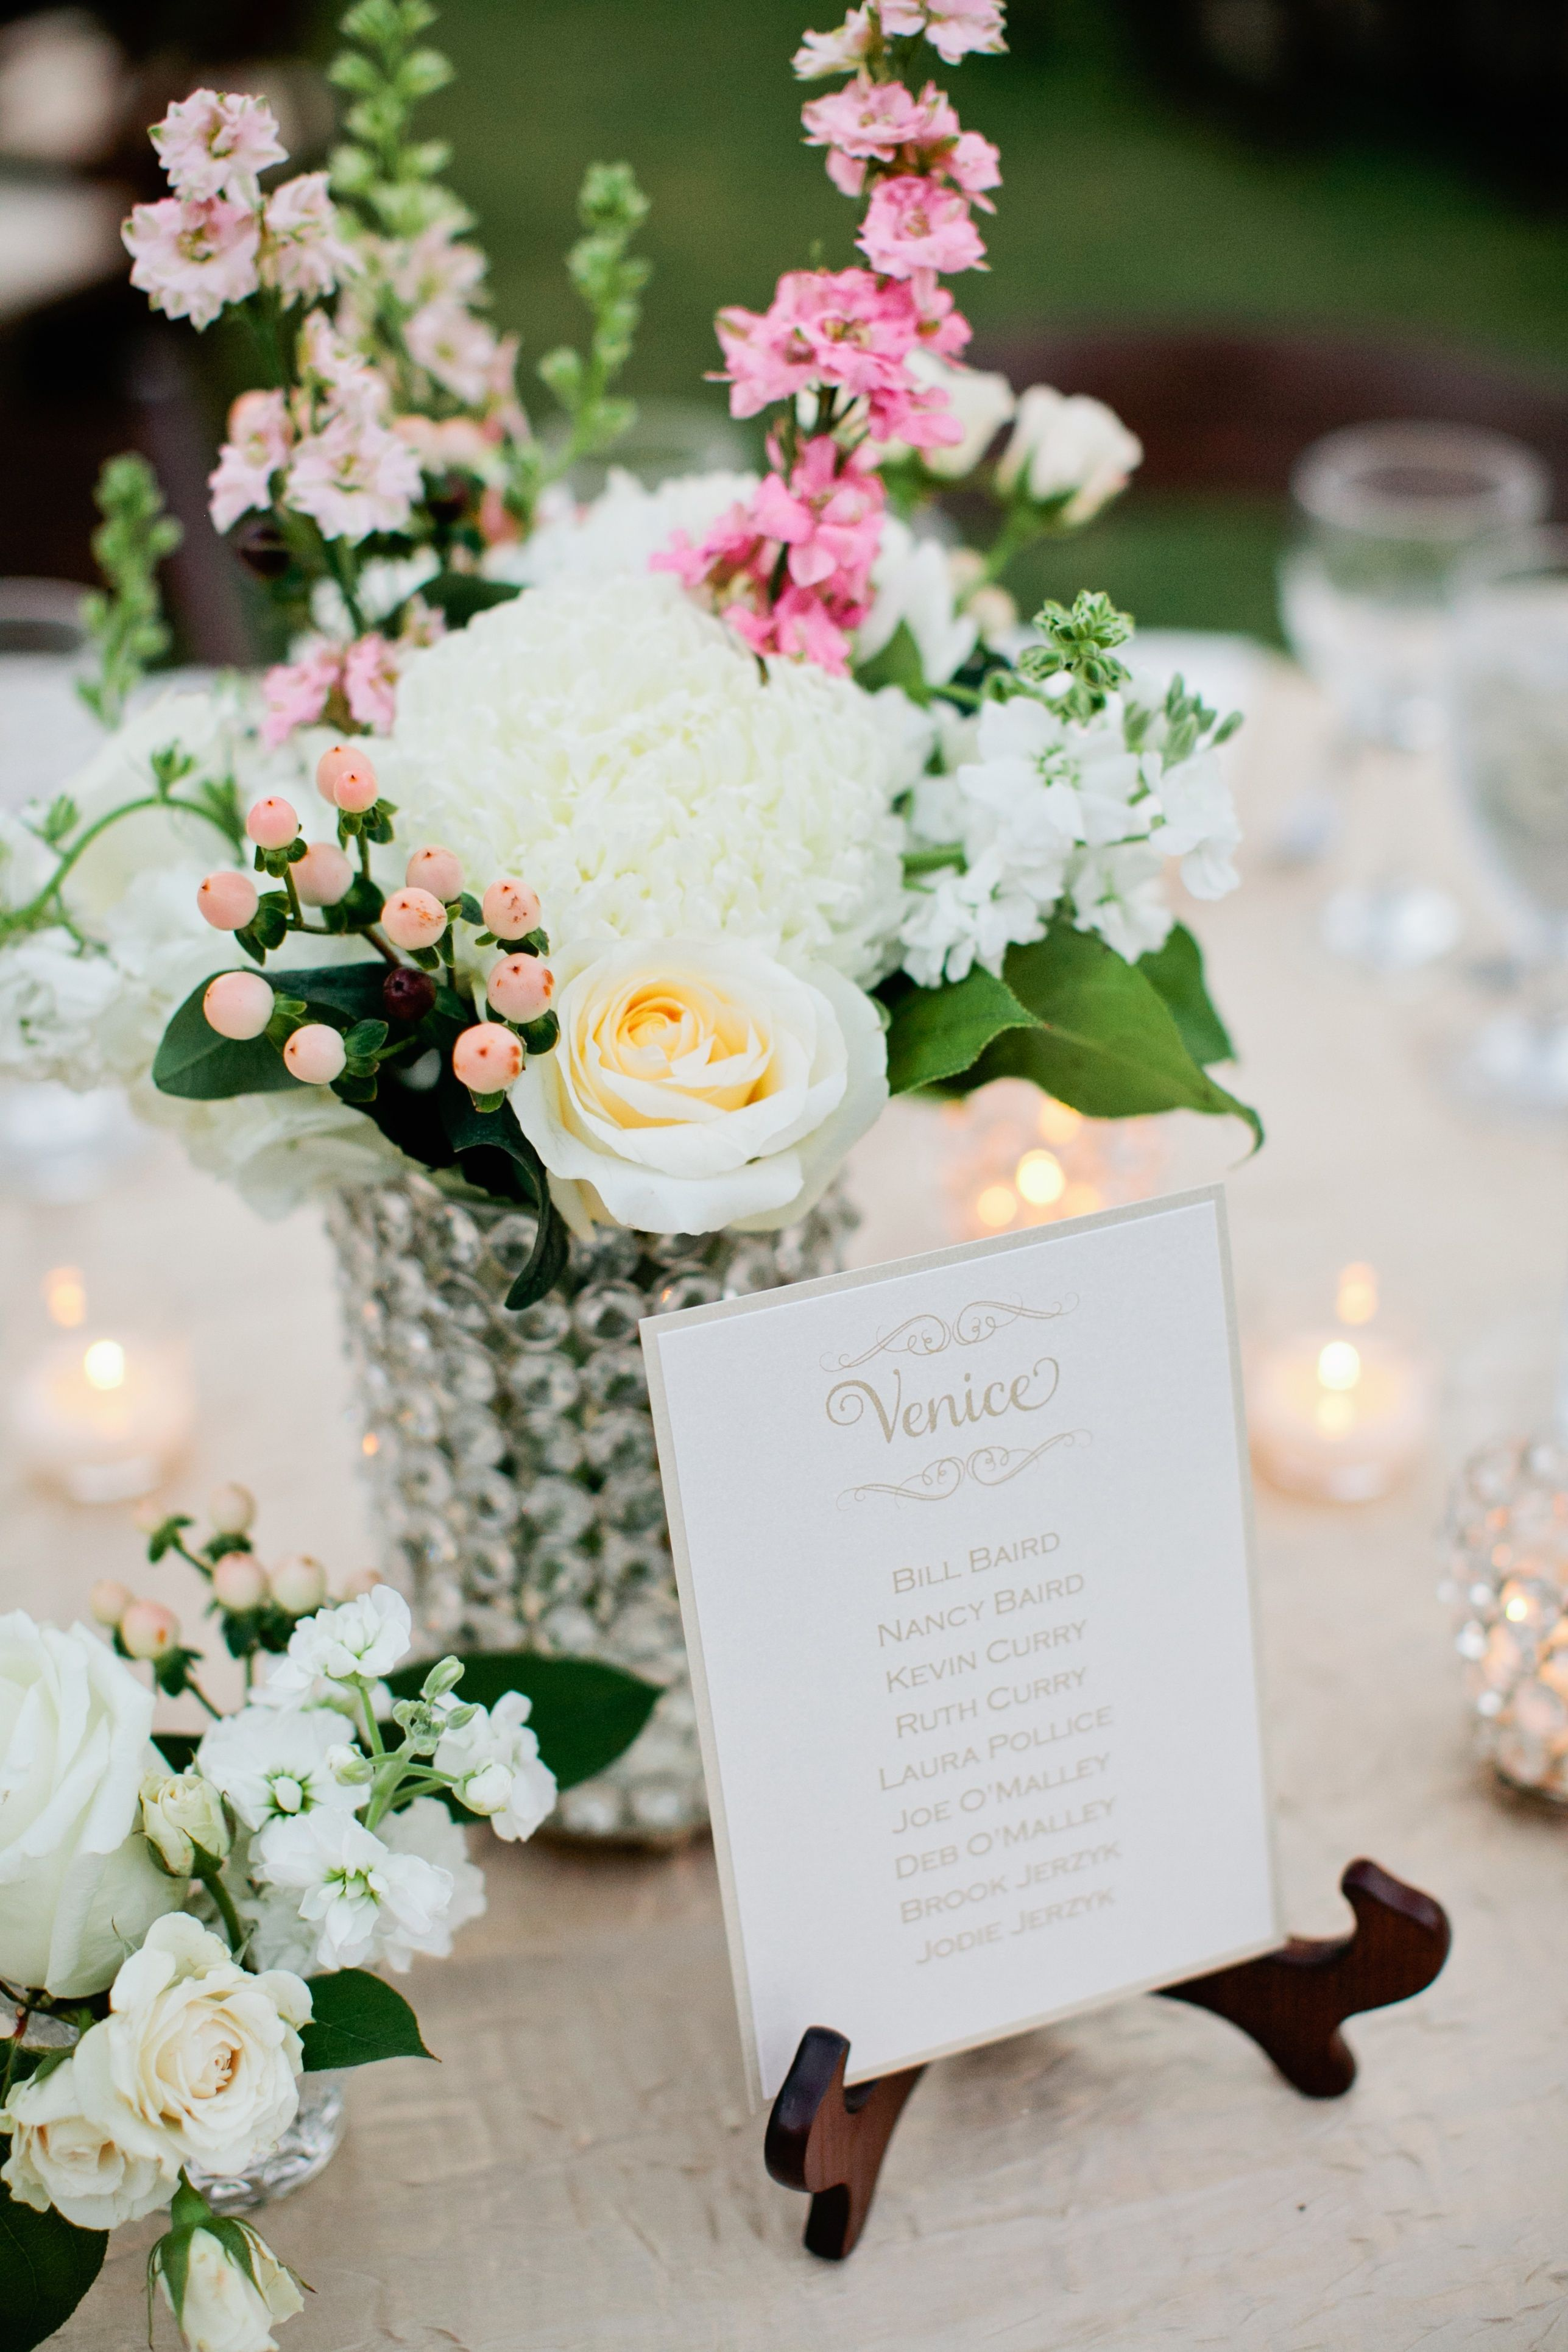 Garden wedding decoration ideas  Romantic vintage centerpieces  Kristyn Hogan Photography  Theknot